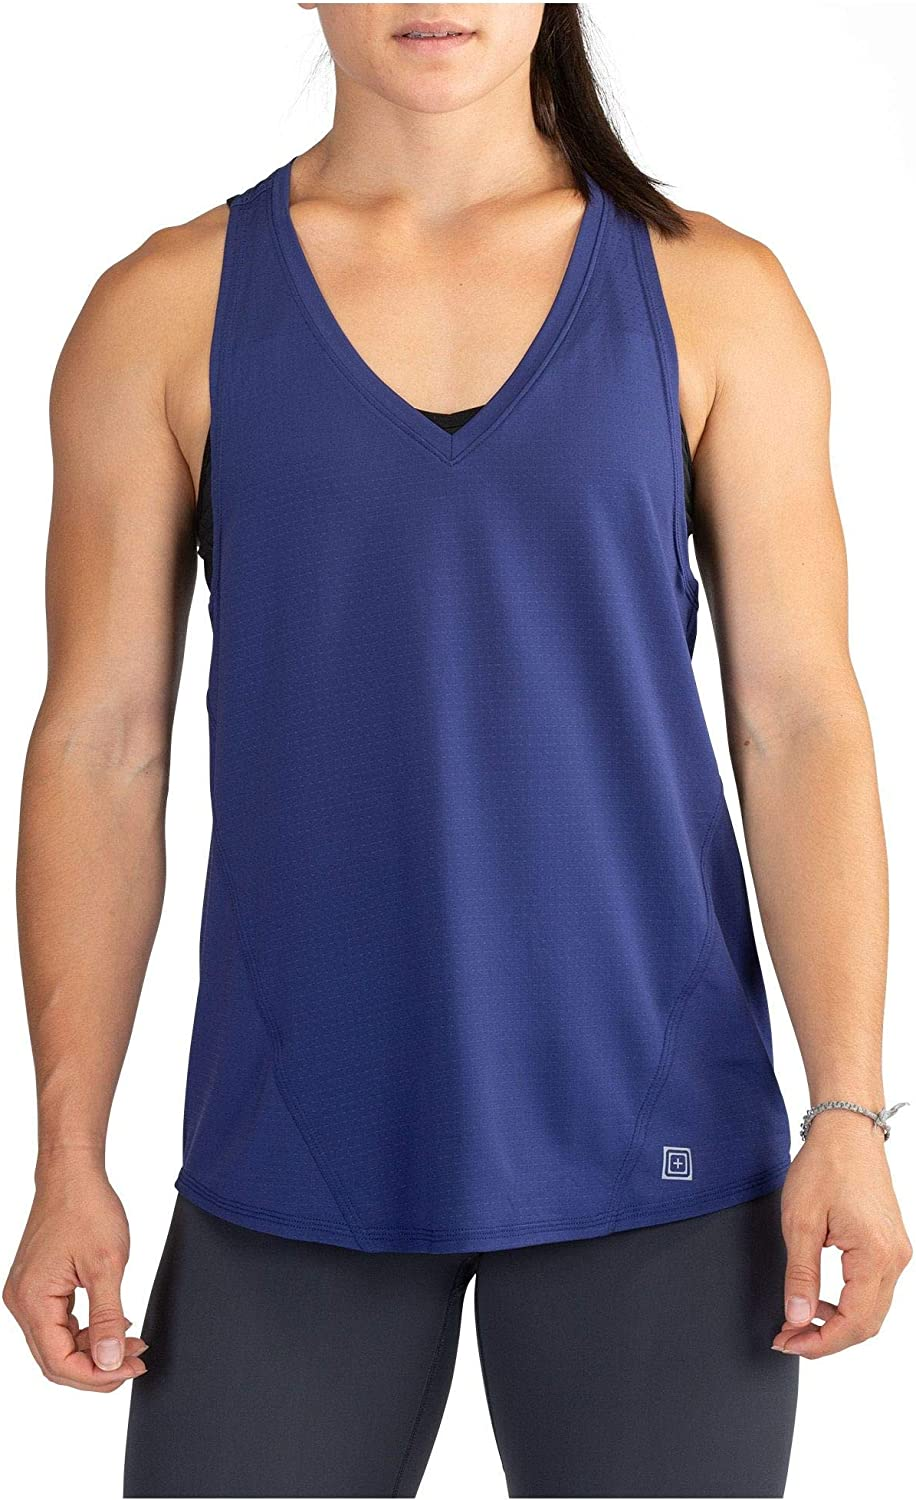 5.11 Tactical Women's Recon Becky Tank Top, Mesh Performance, Wicking and Anti-Odor Finish, Style 66000